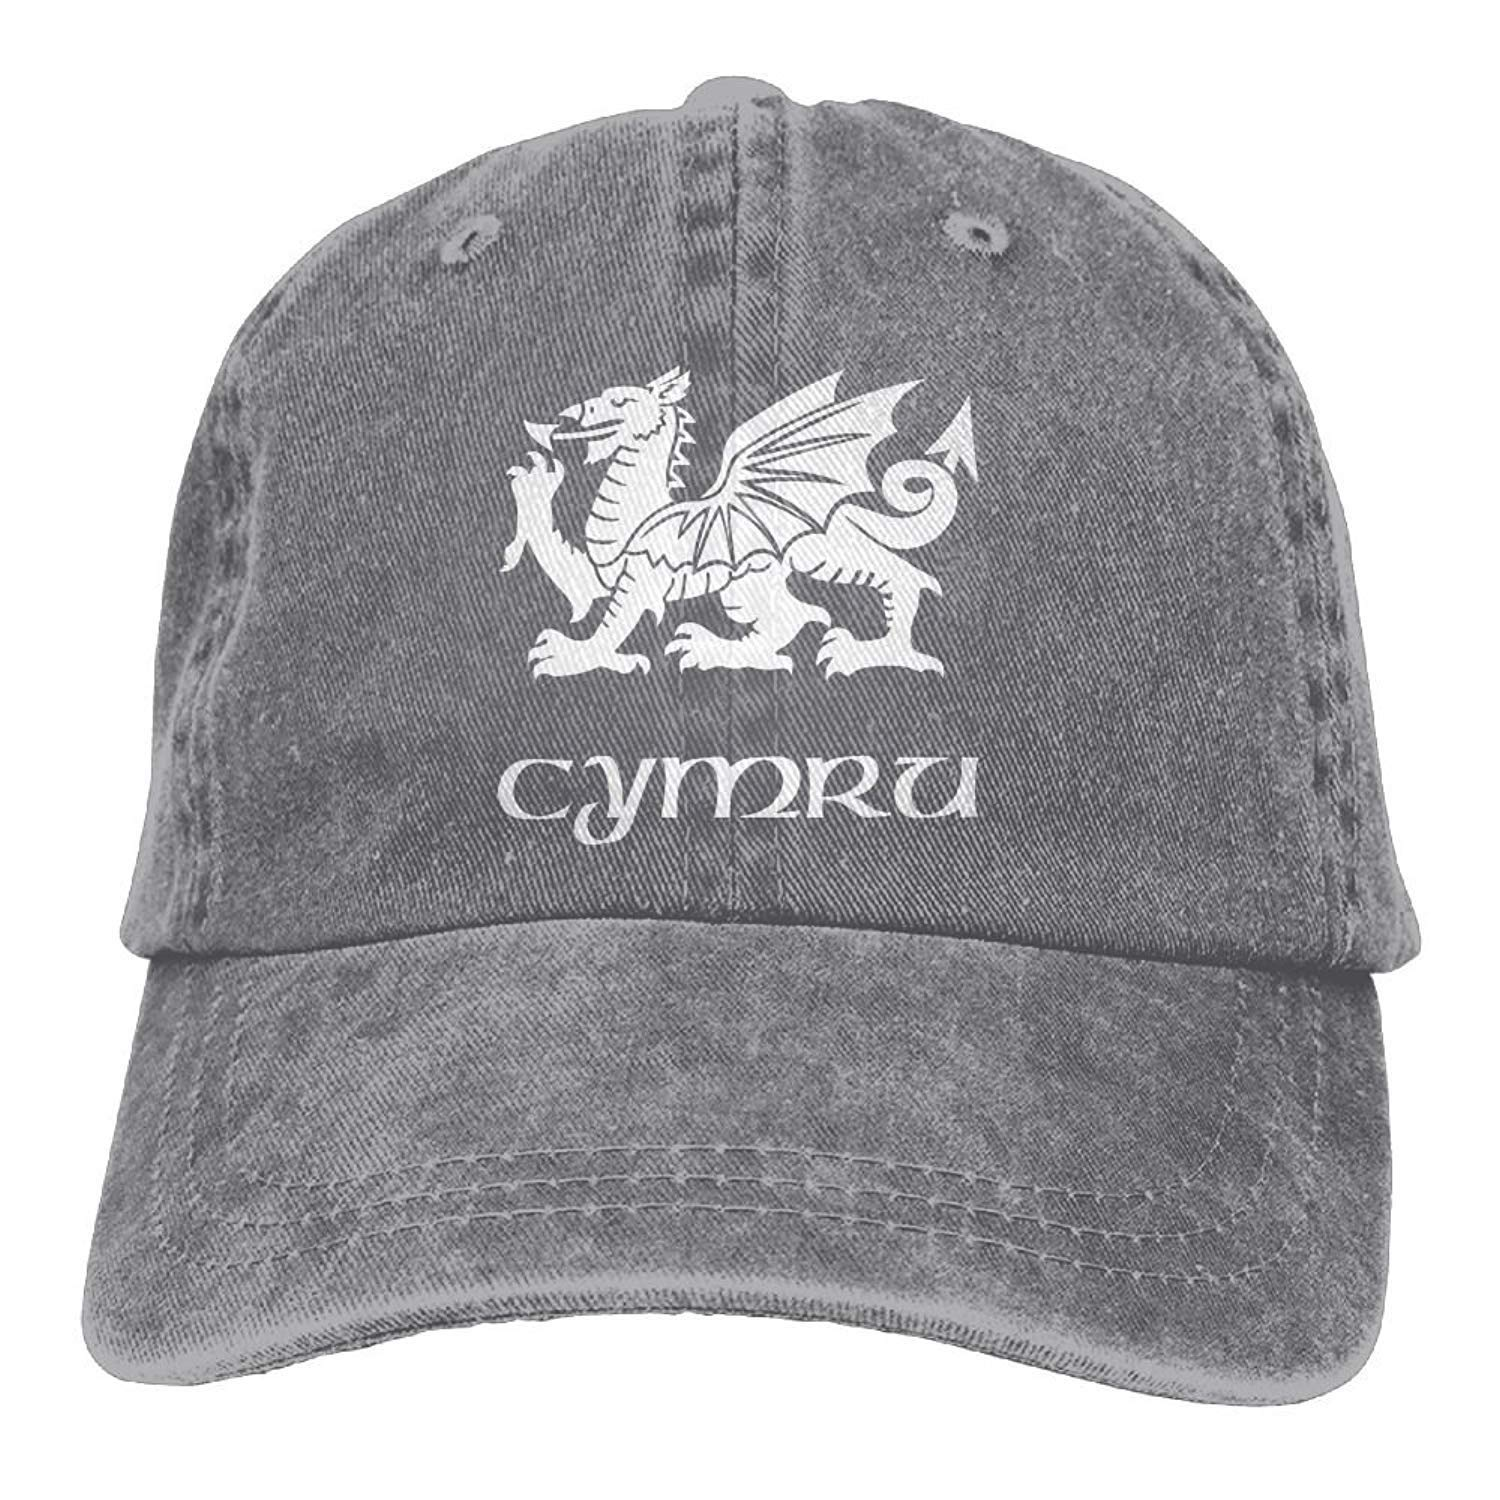 Cymru Red Dragon Welsch Flag Plain Adjustable Cowboy Cap Denim Hat for Women and Men JTRVW Cowboy Hats